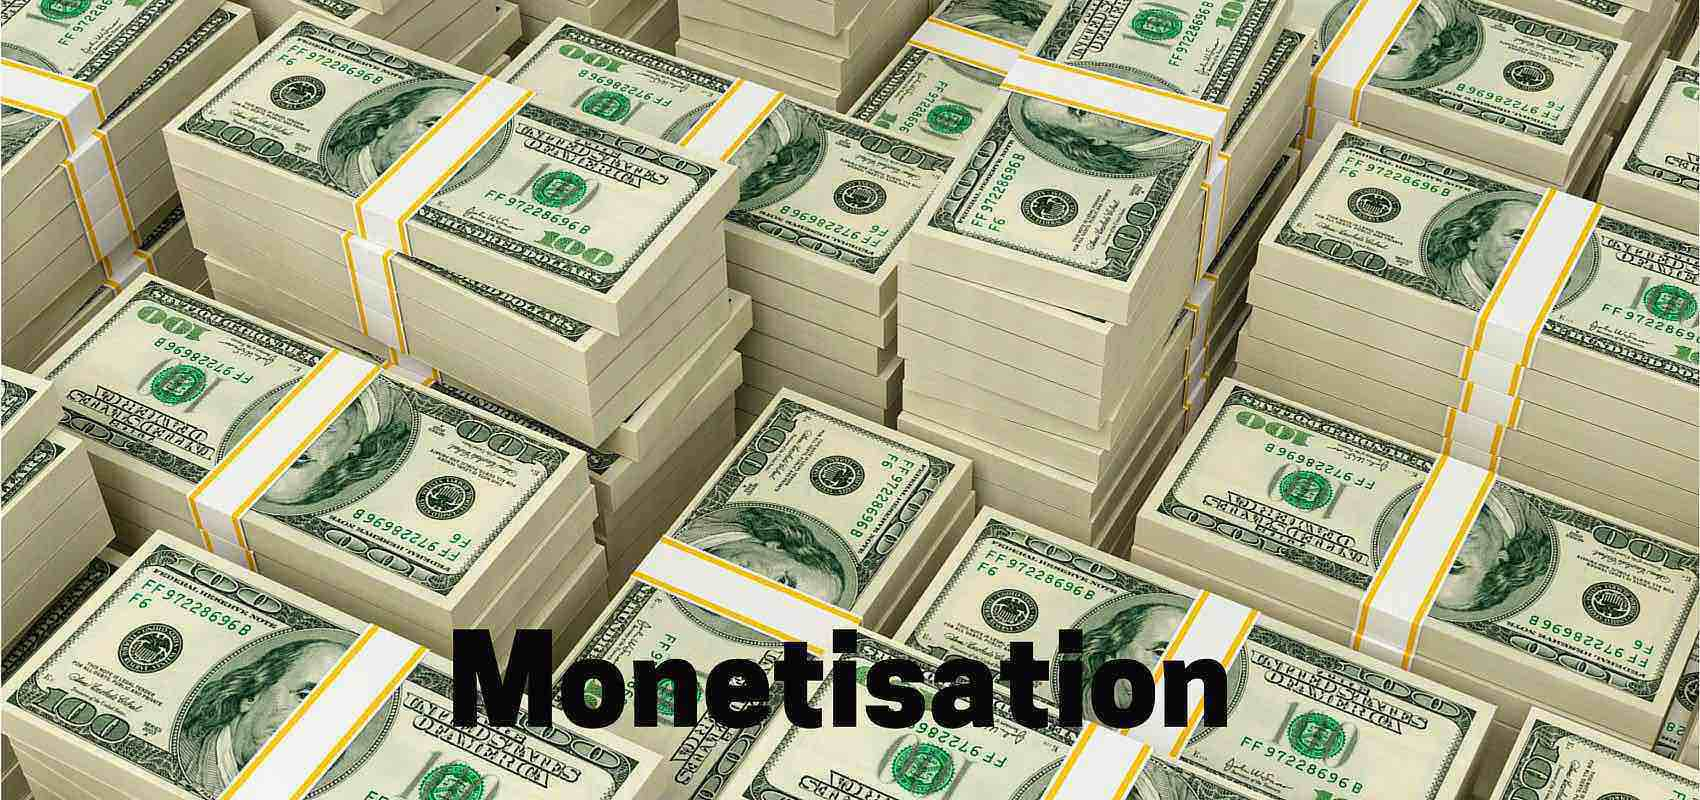 Monetisation